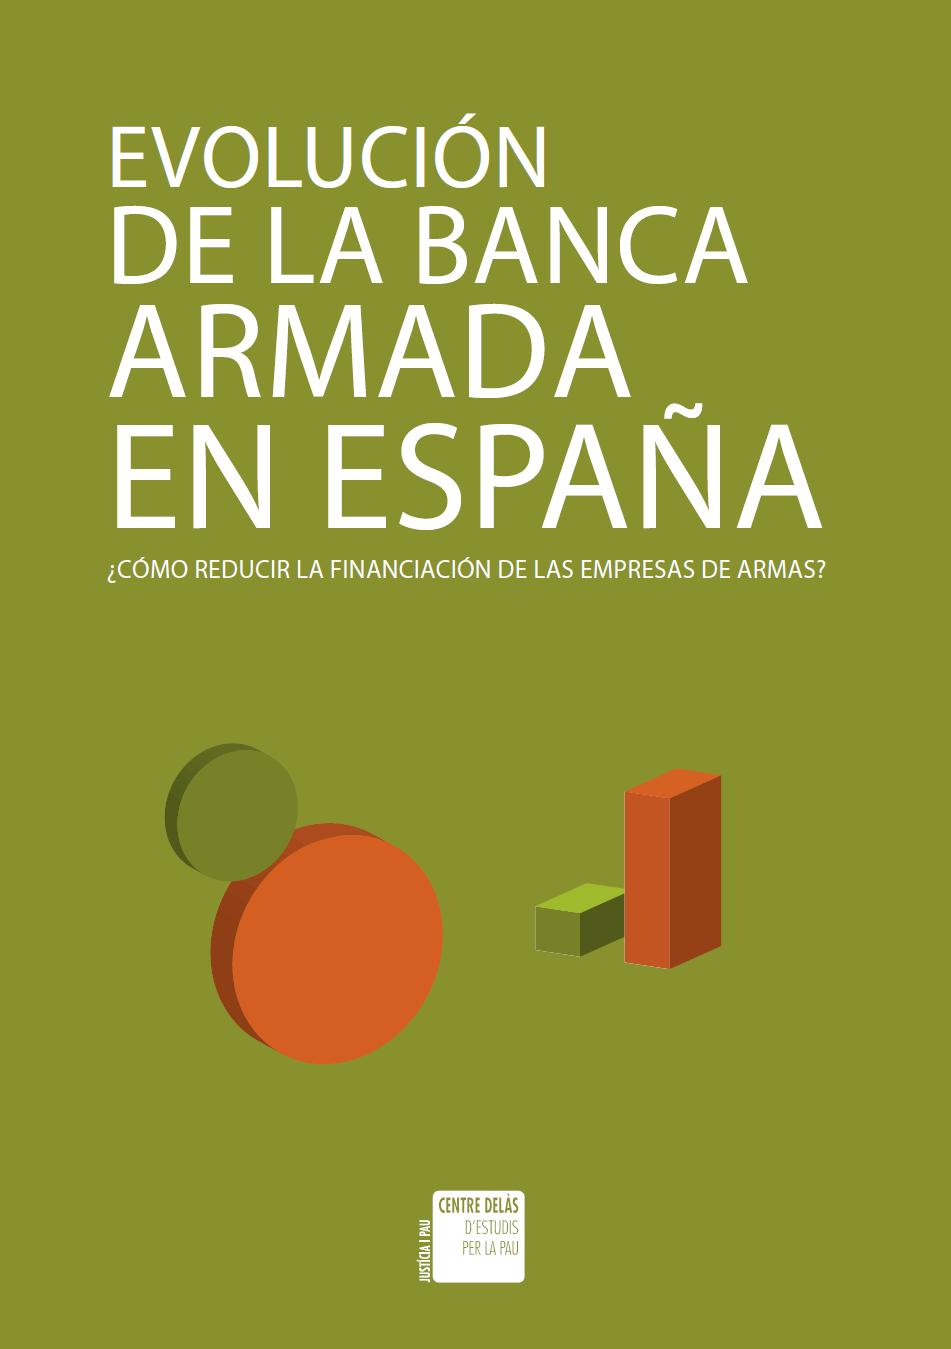 Report 20: The Evolution of the Armed forces in Spain. How to reduce the financing of of weapon companies?